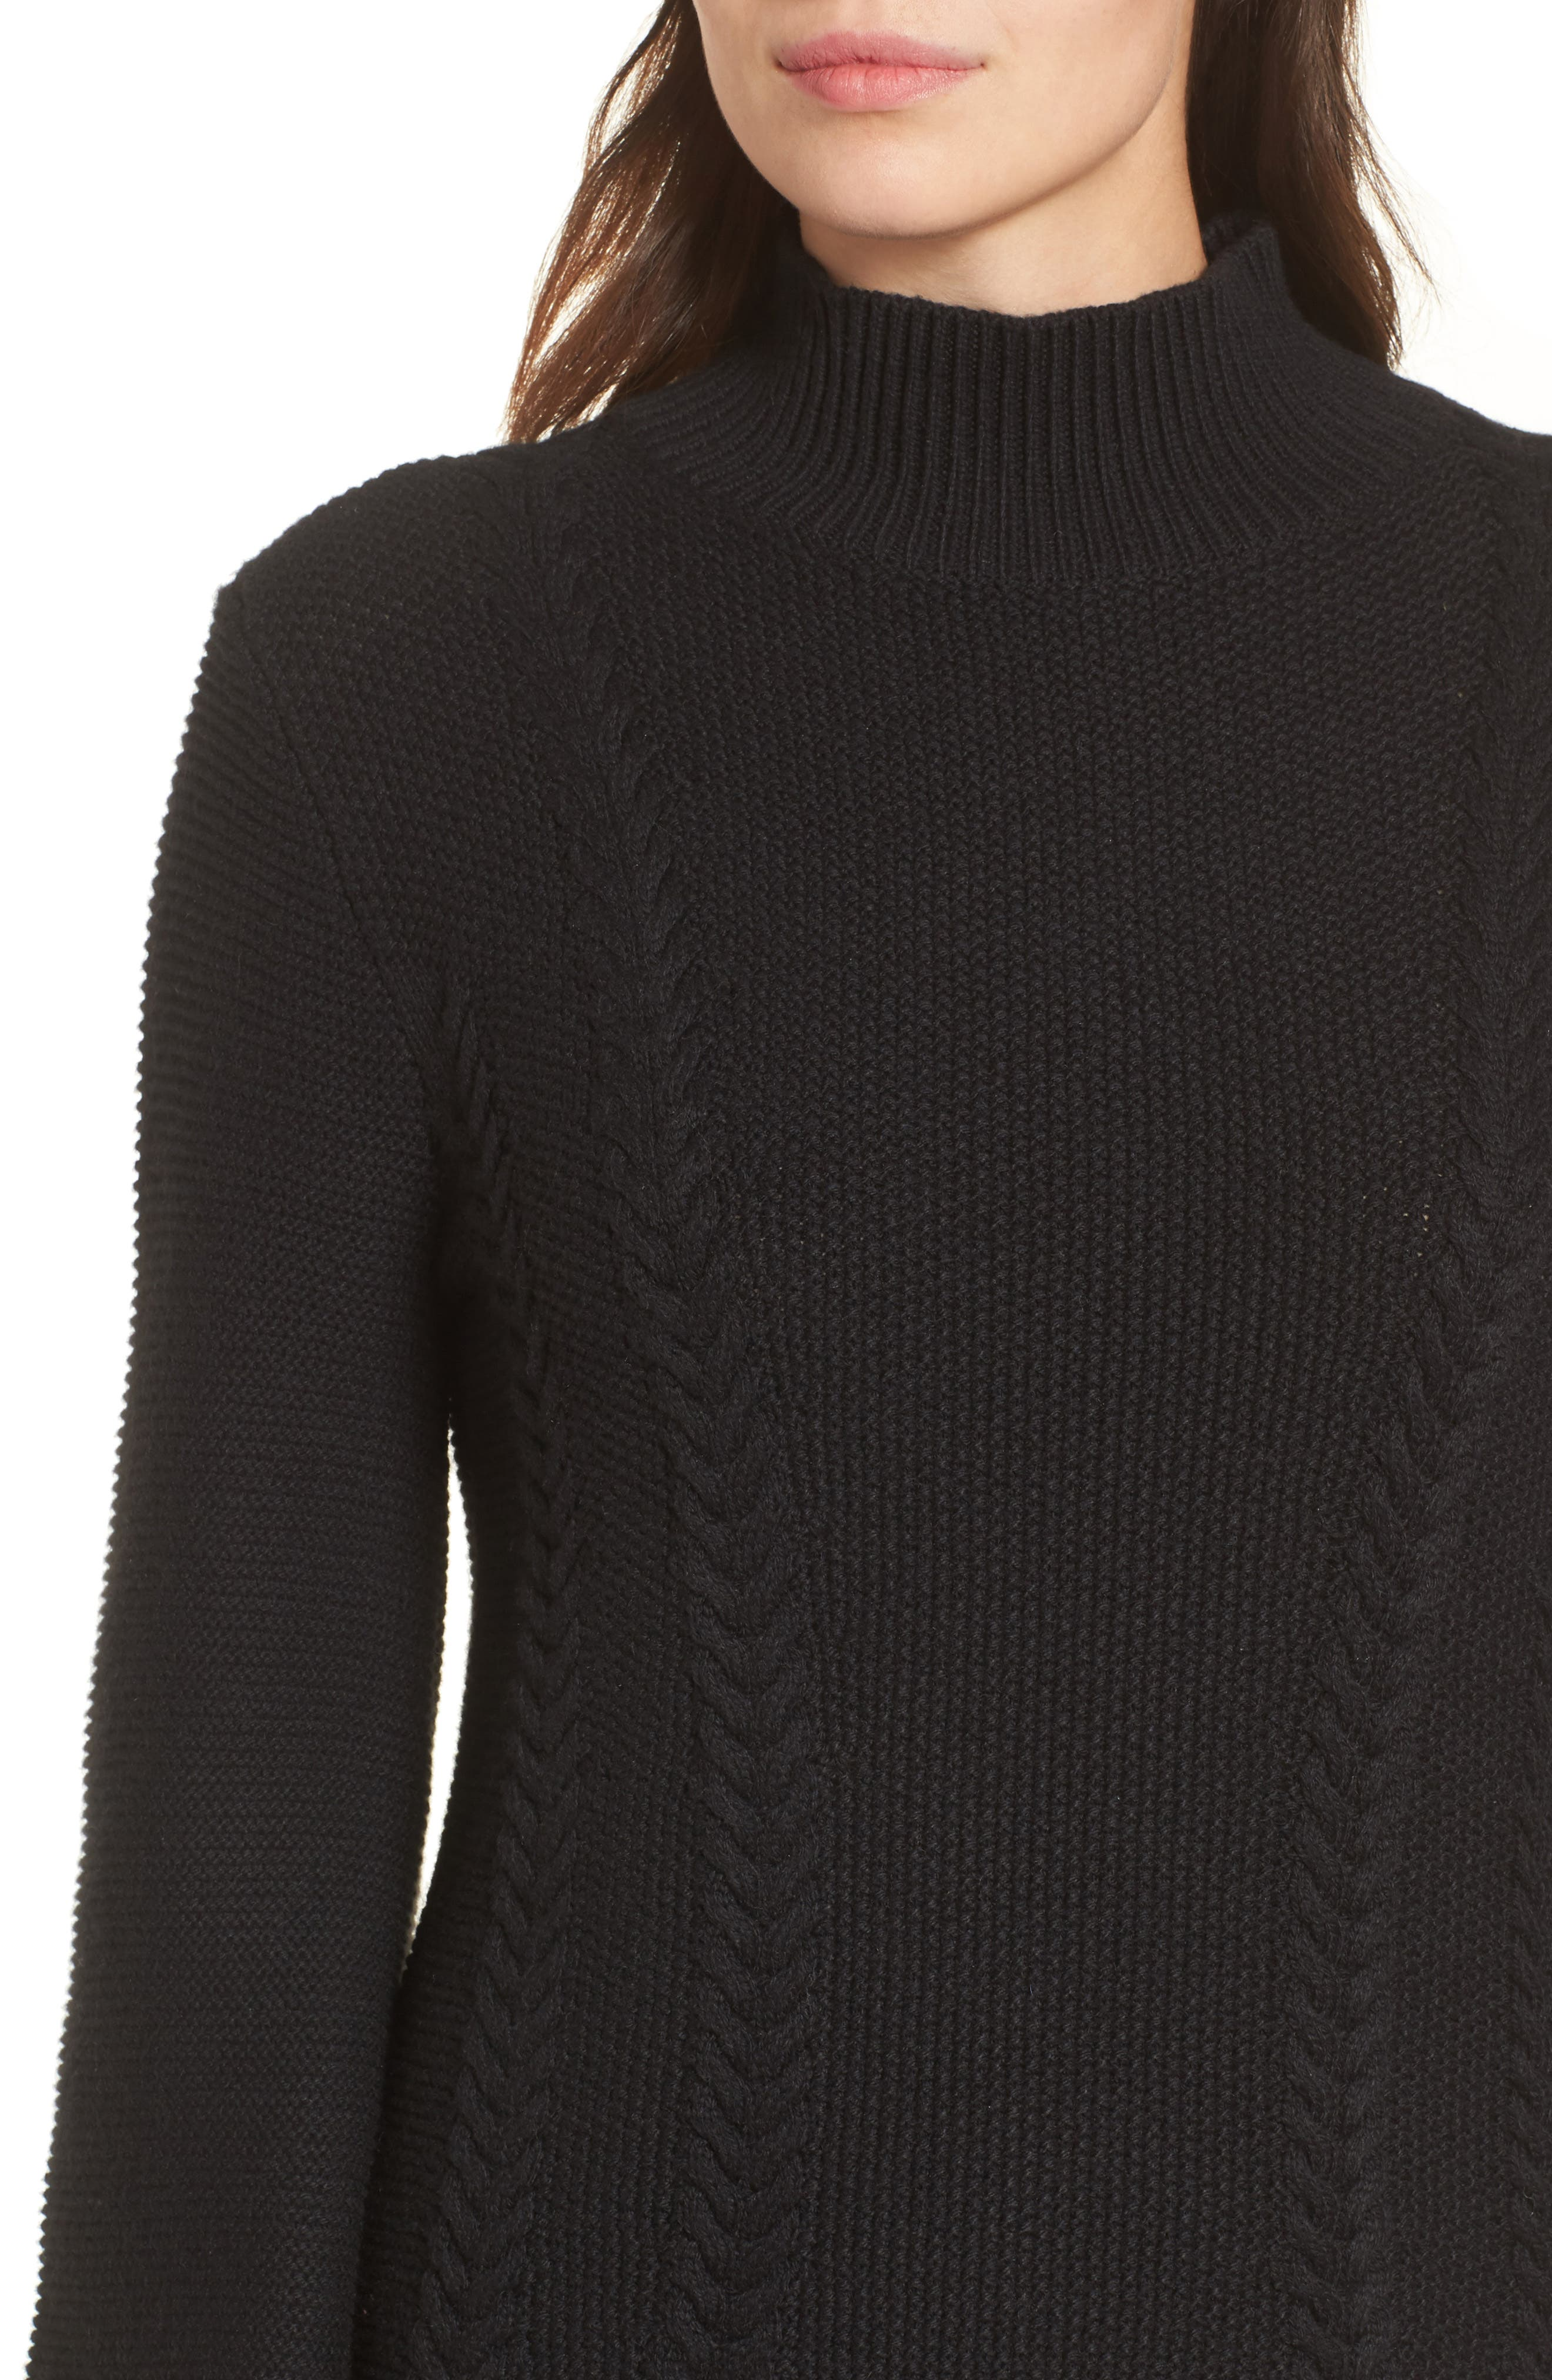 Cable Knit Sweater Dress,                             Alternate thumbnail 7, color,